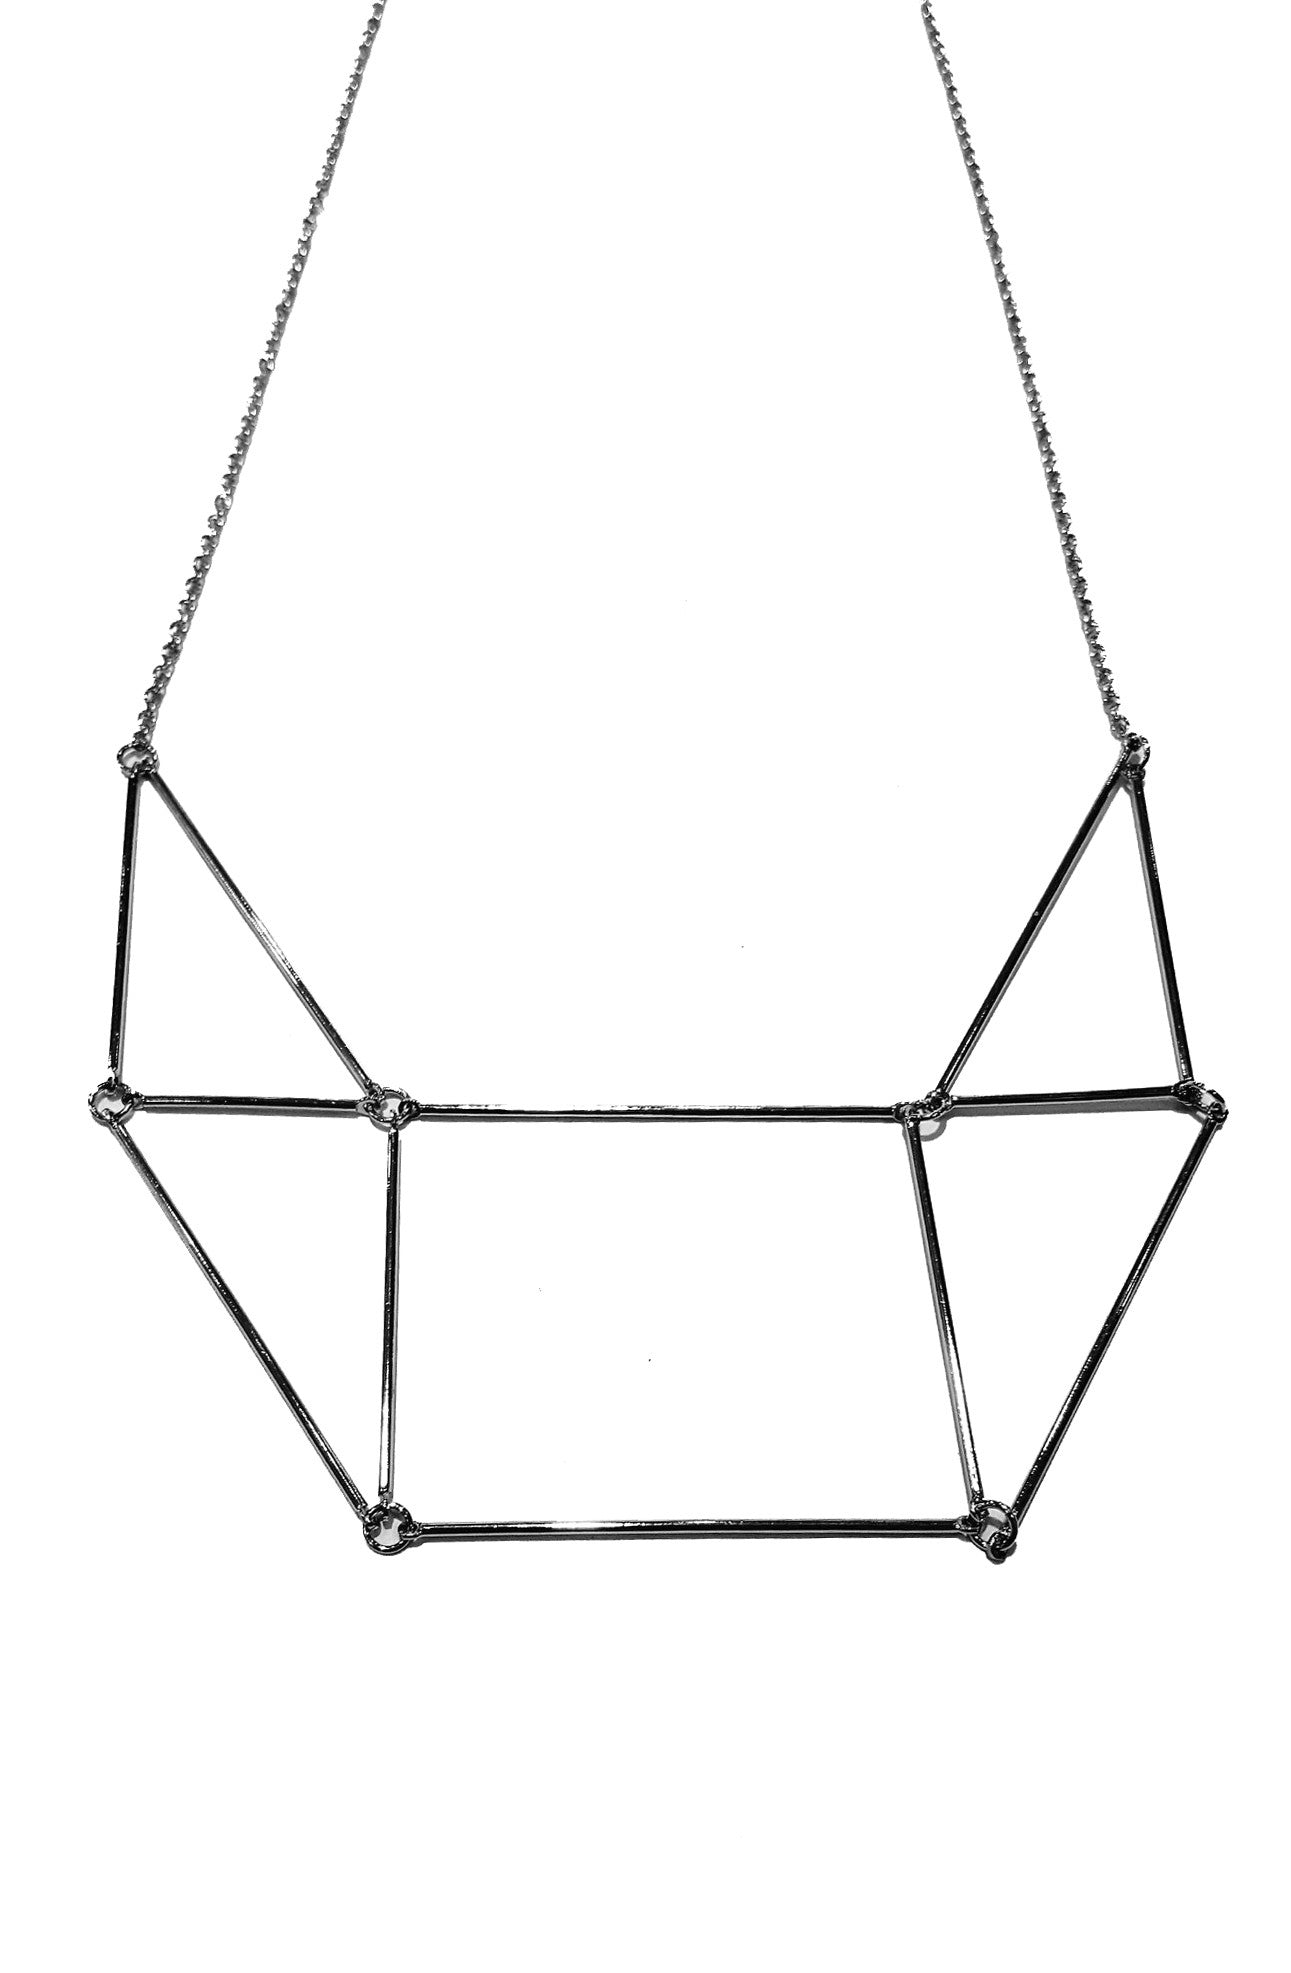 Silver Geometric Design Necklace